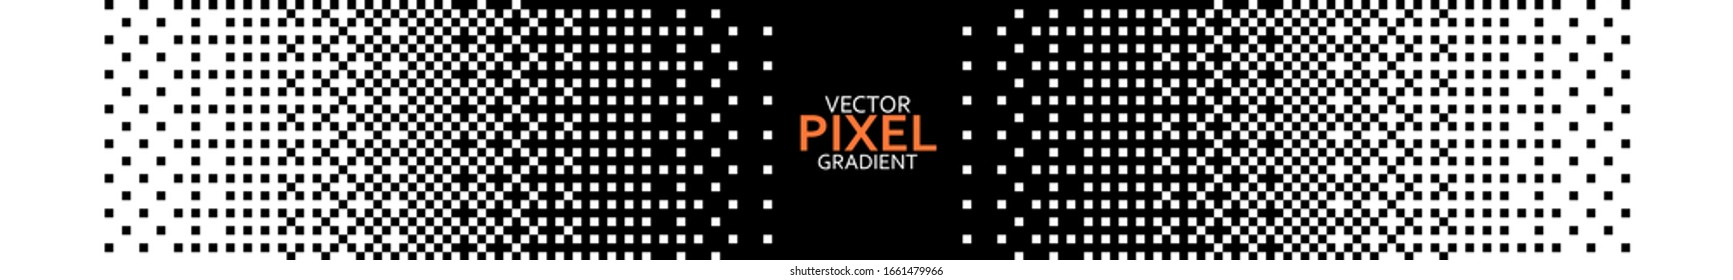 Square Pixel Halftone. Black and white linear gradient. Vector Backdrop. Dithering effect. Pixel gradient abstract mosaic background for modern design. 8/16 bit background.